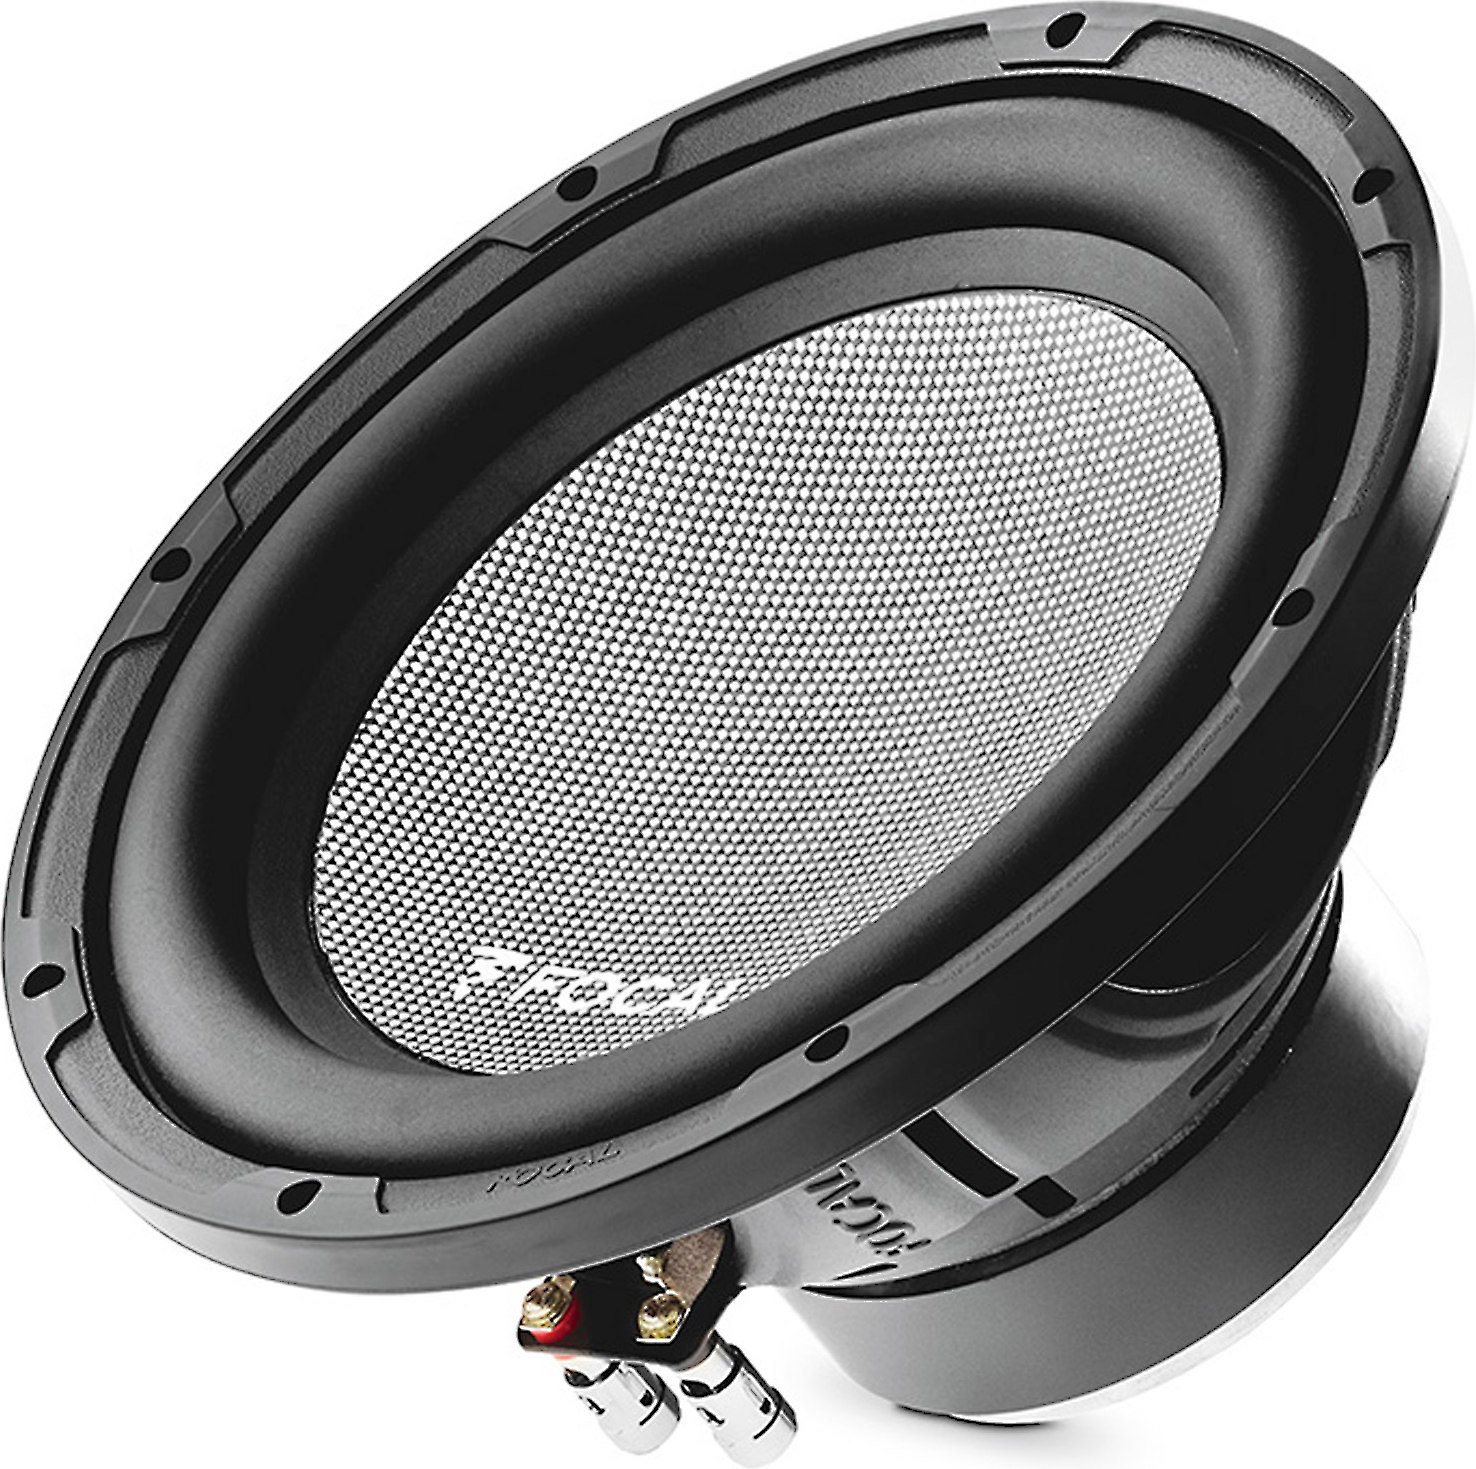 Focal Performance Access 25A4 Woofer Chassis 25cm